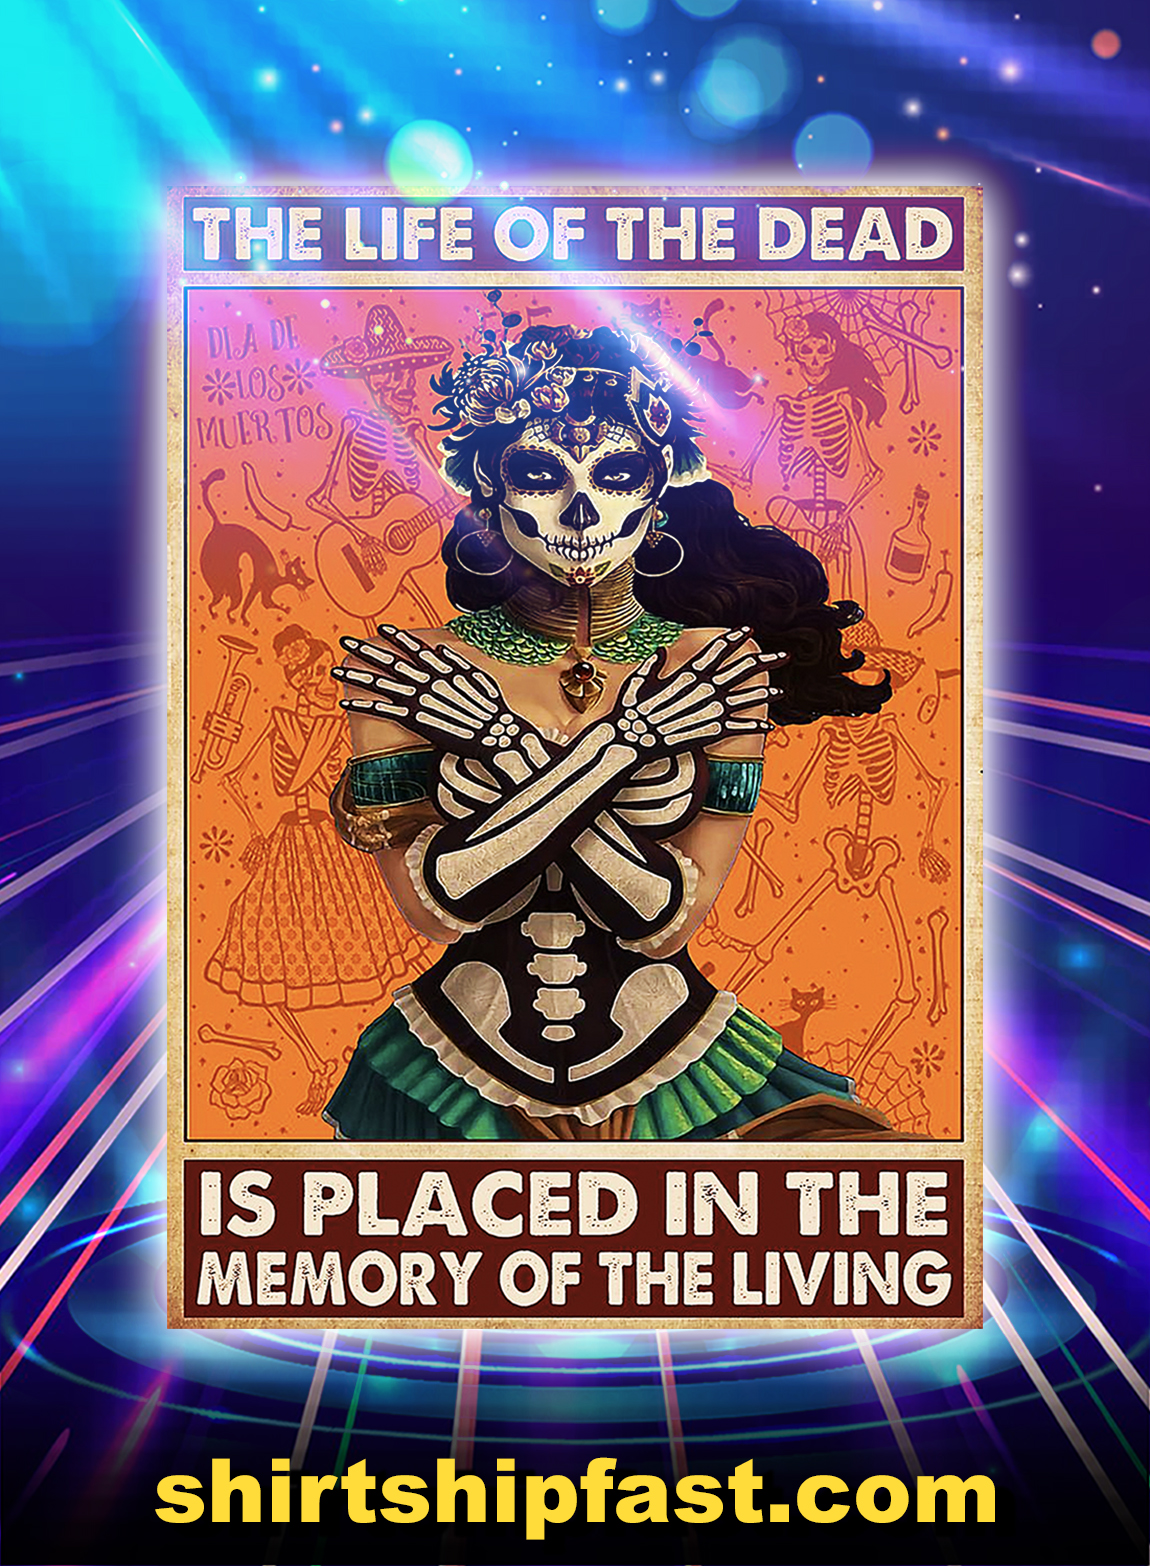 The life of the dead is placed in the memory of the living poster - A2